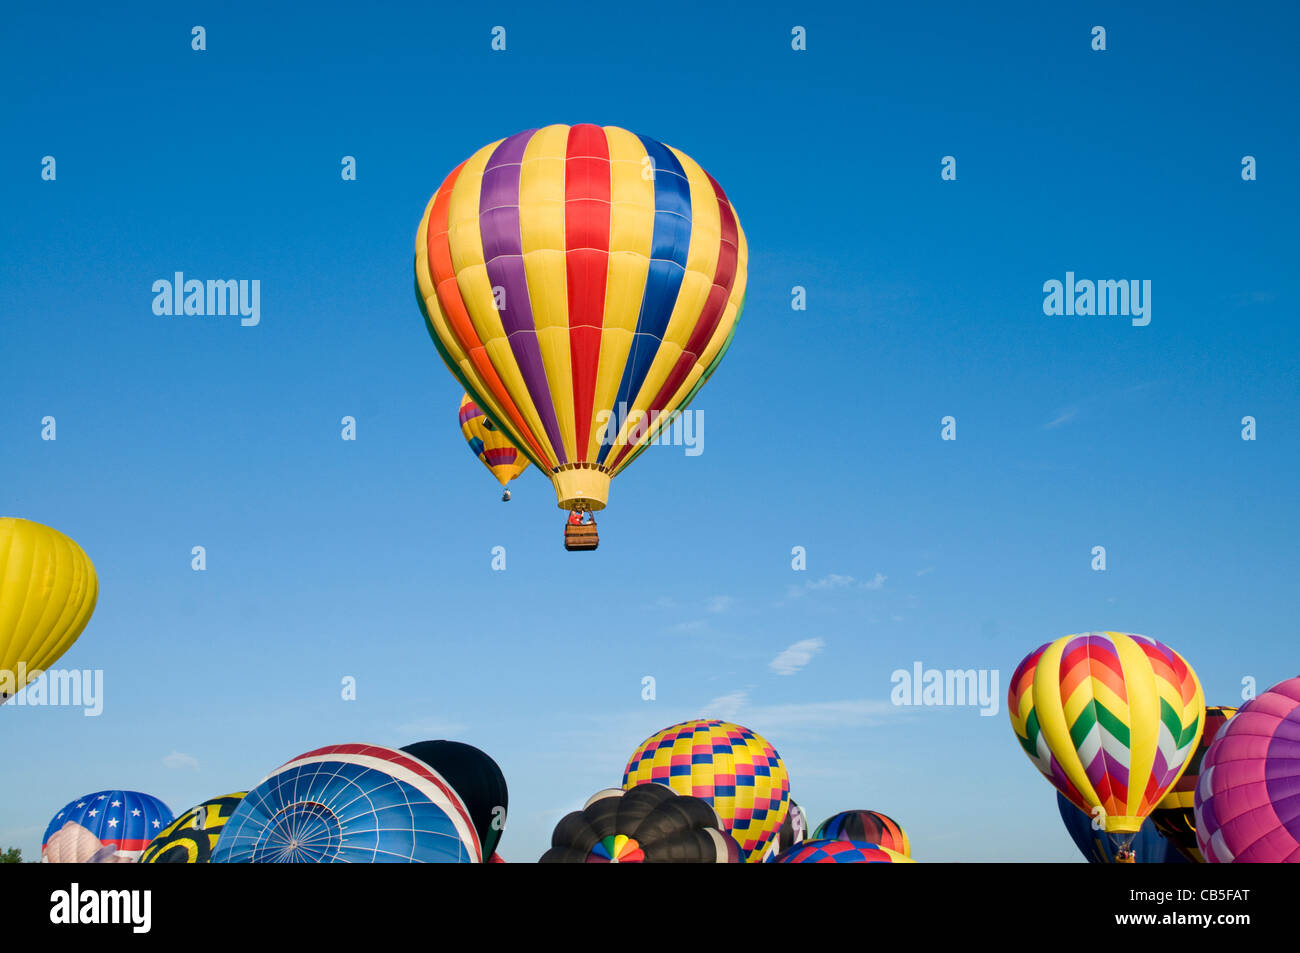 Hot-air balloons ascending over inflating ones on the ground - Stock Image